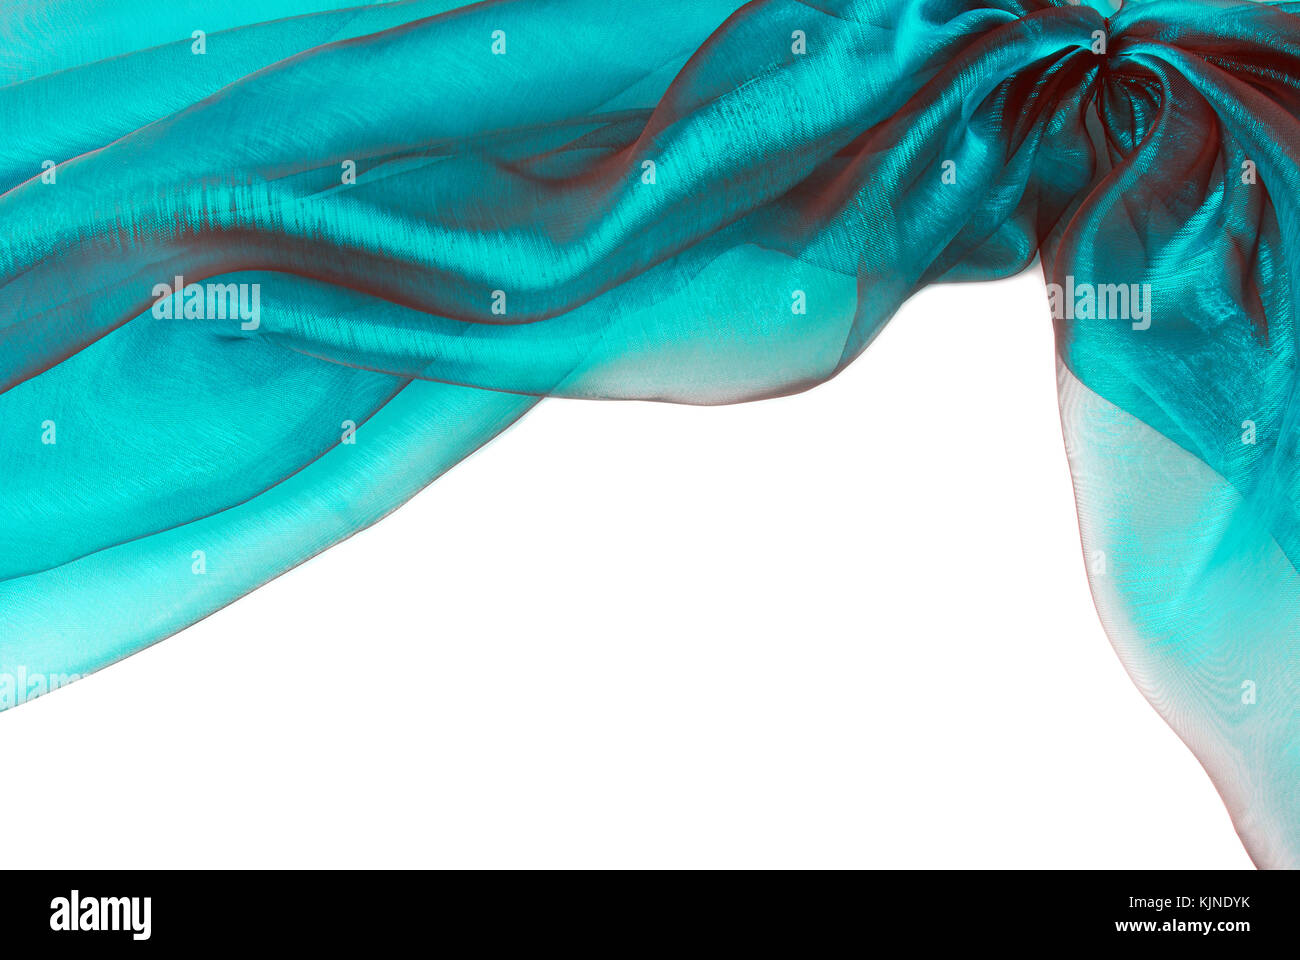 organza fabric texture border frame background - Stock Image